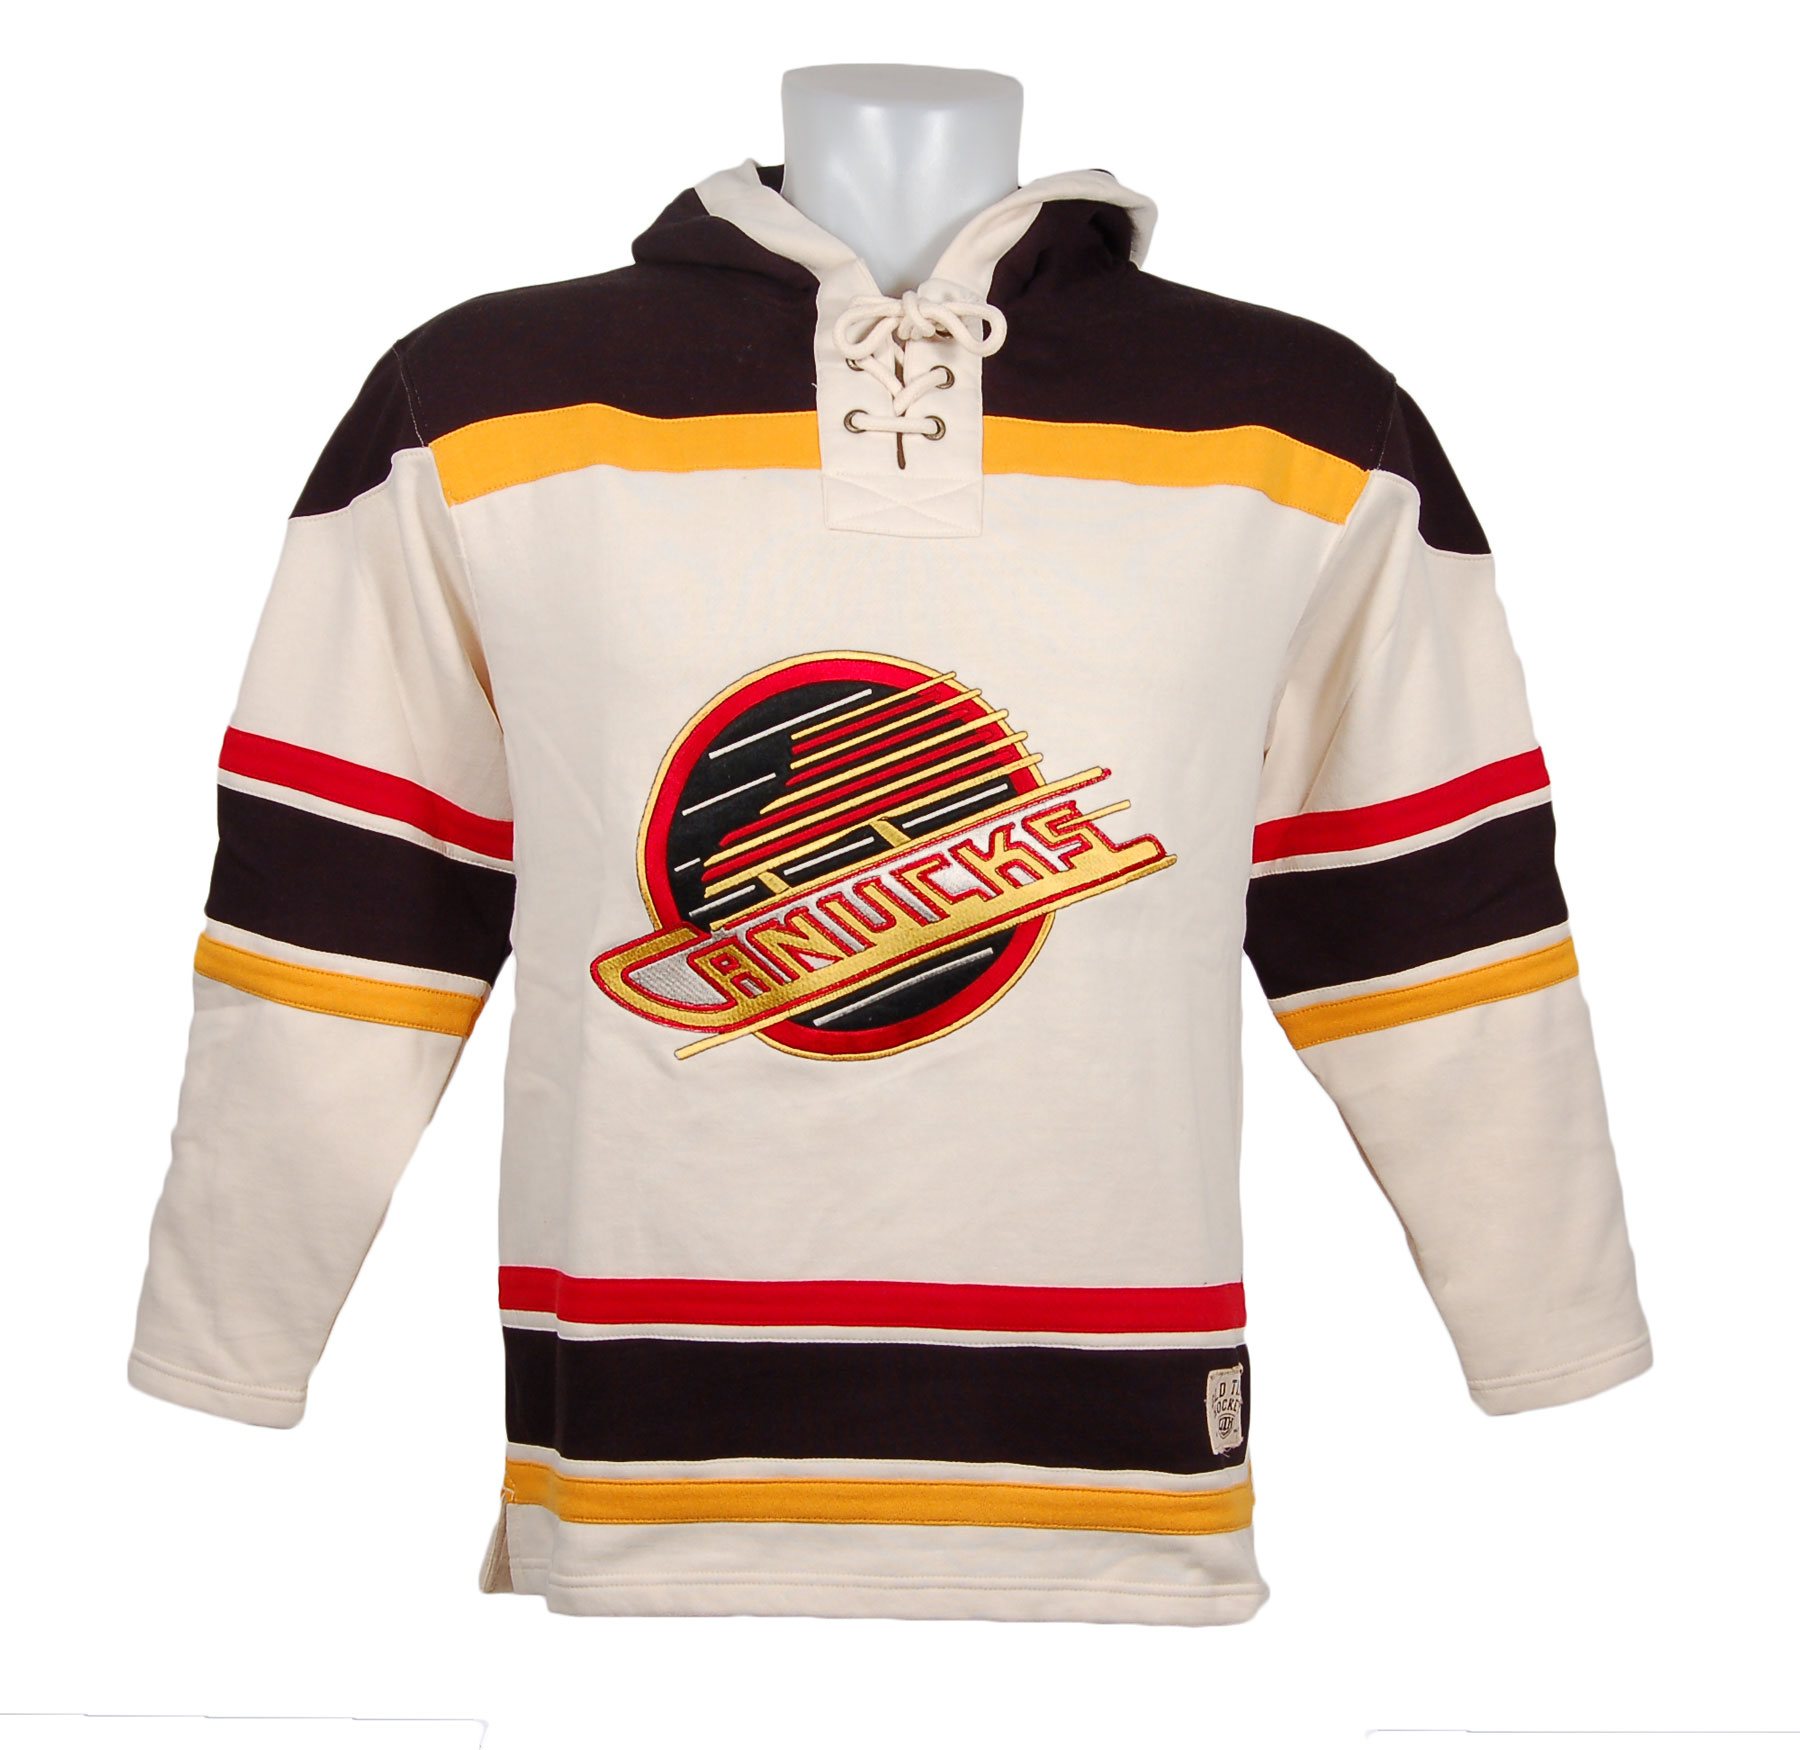 a27da9cb Vancouver Canucks Vintage Heavyweight Lacer Hoodie (Skate Logo) - image 1  of 1 zoomed image